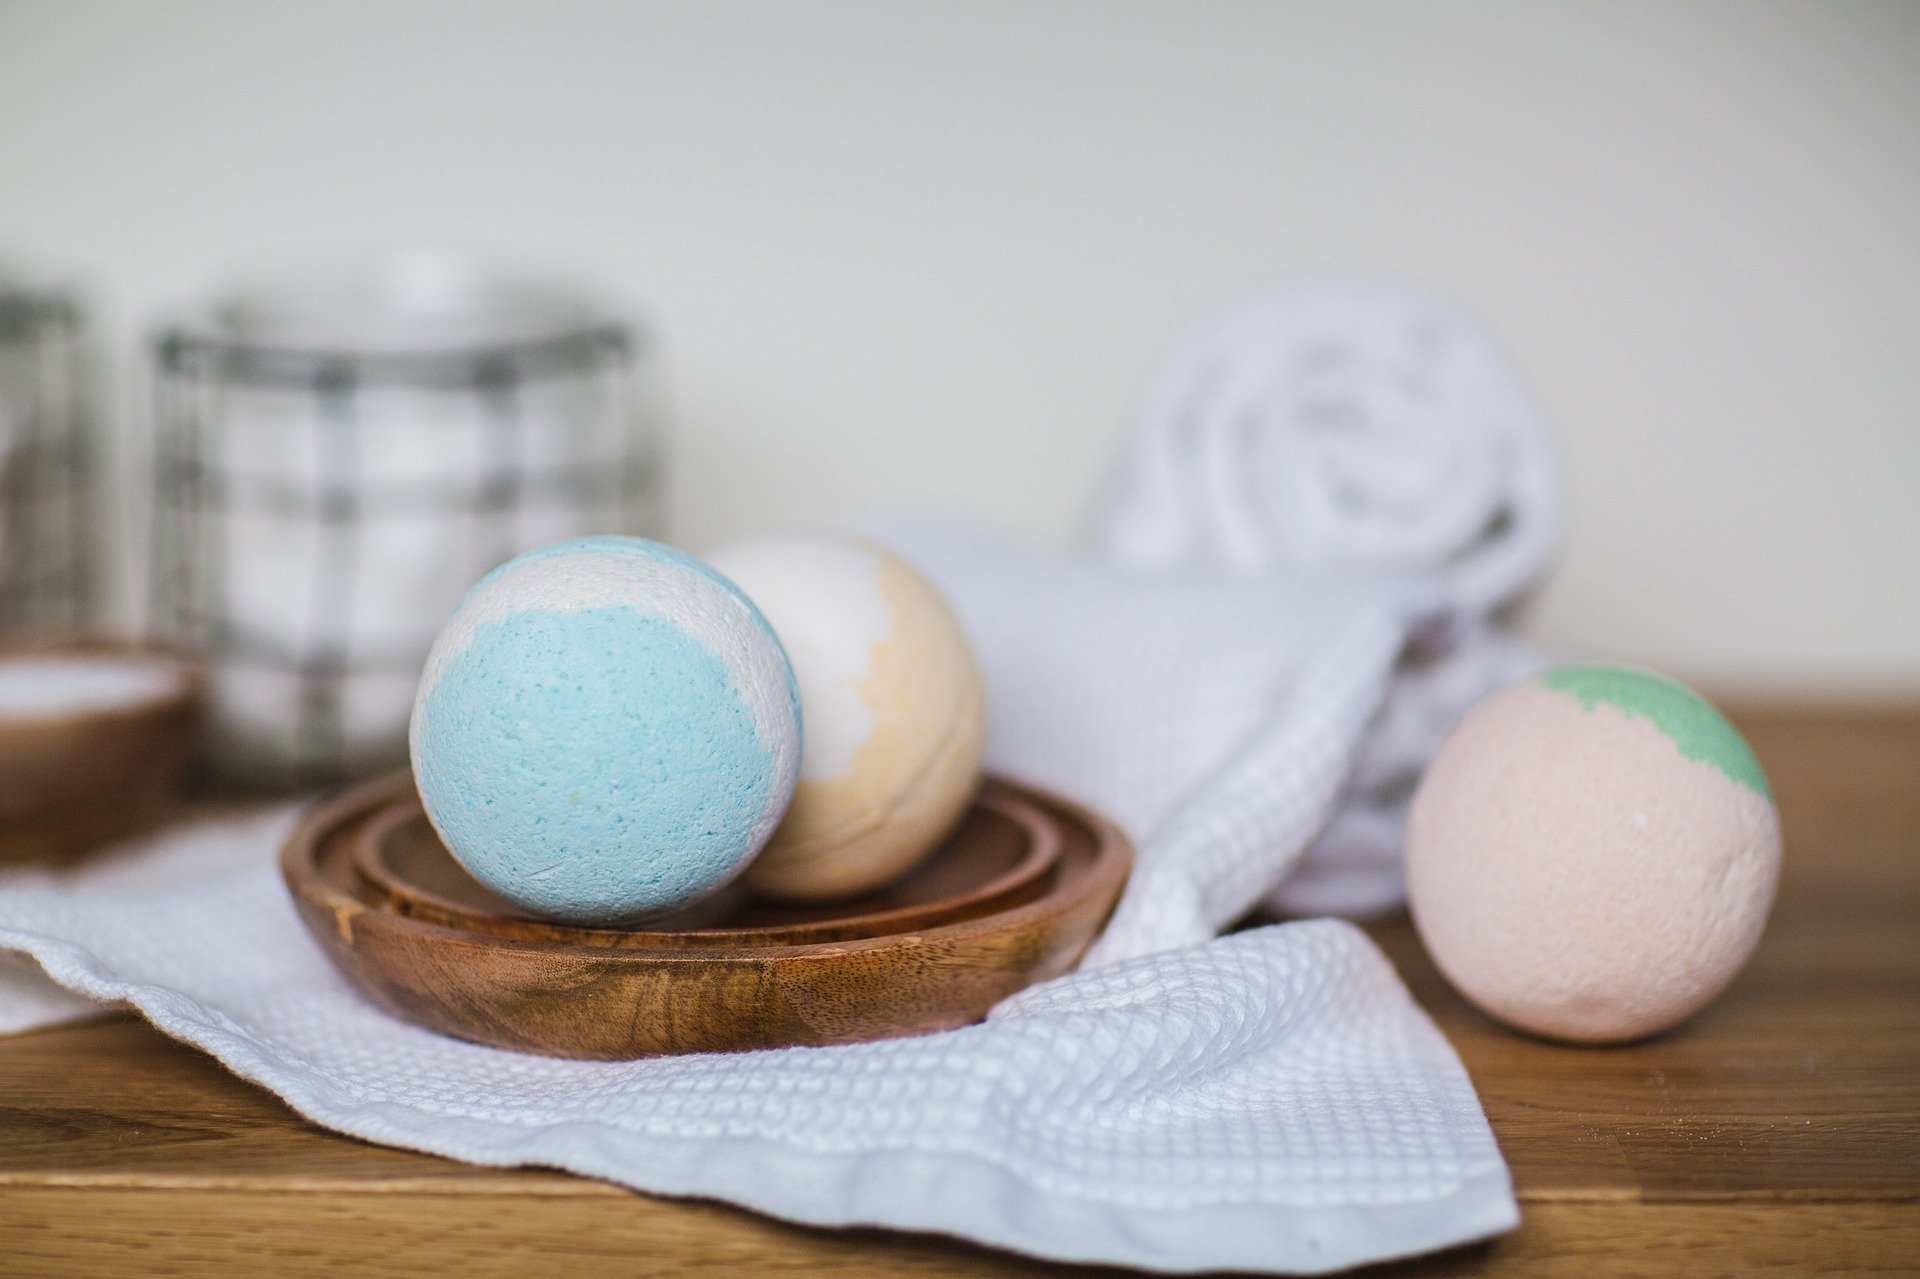 bath bombs, relaxation, hygge